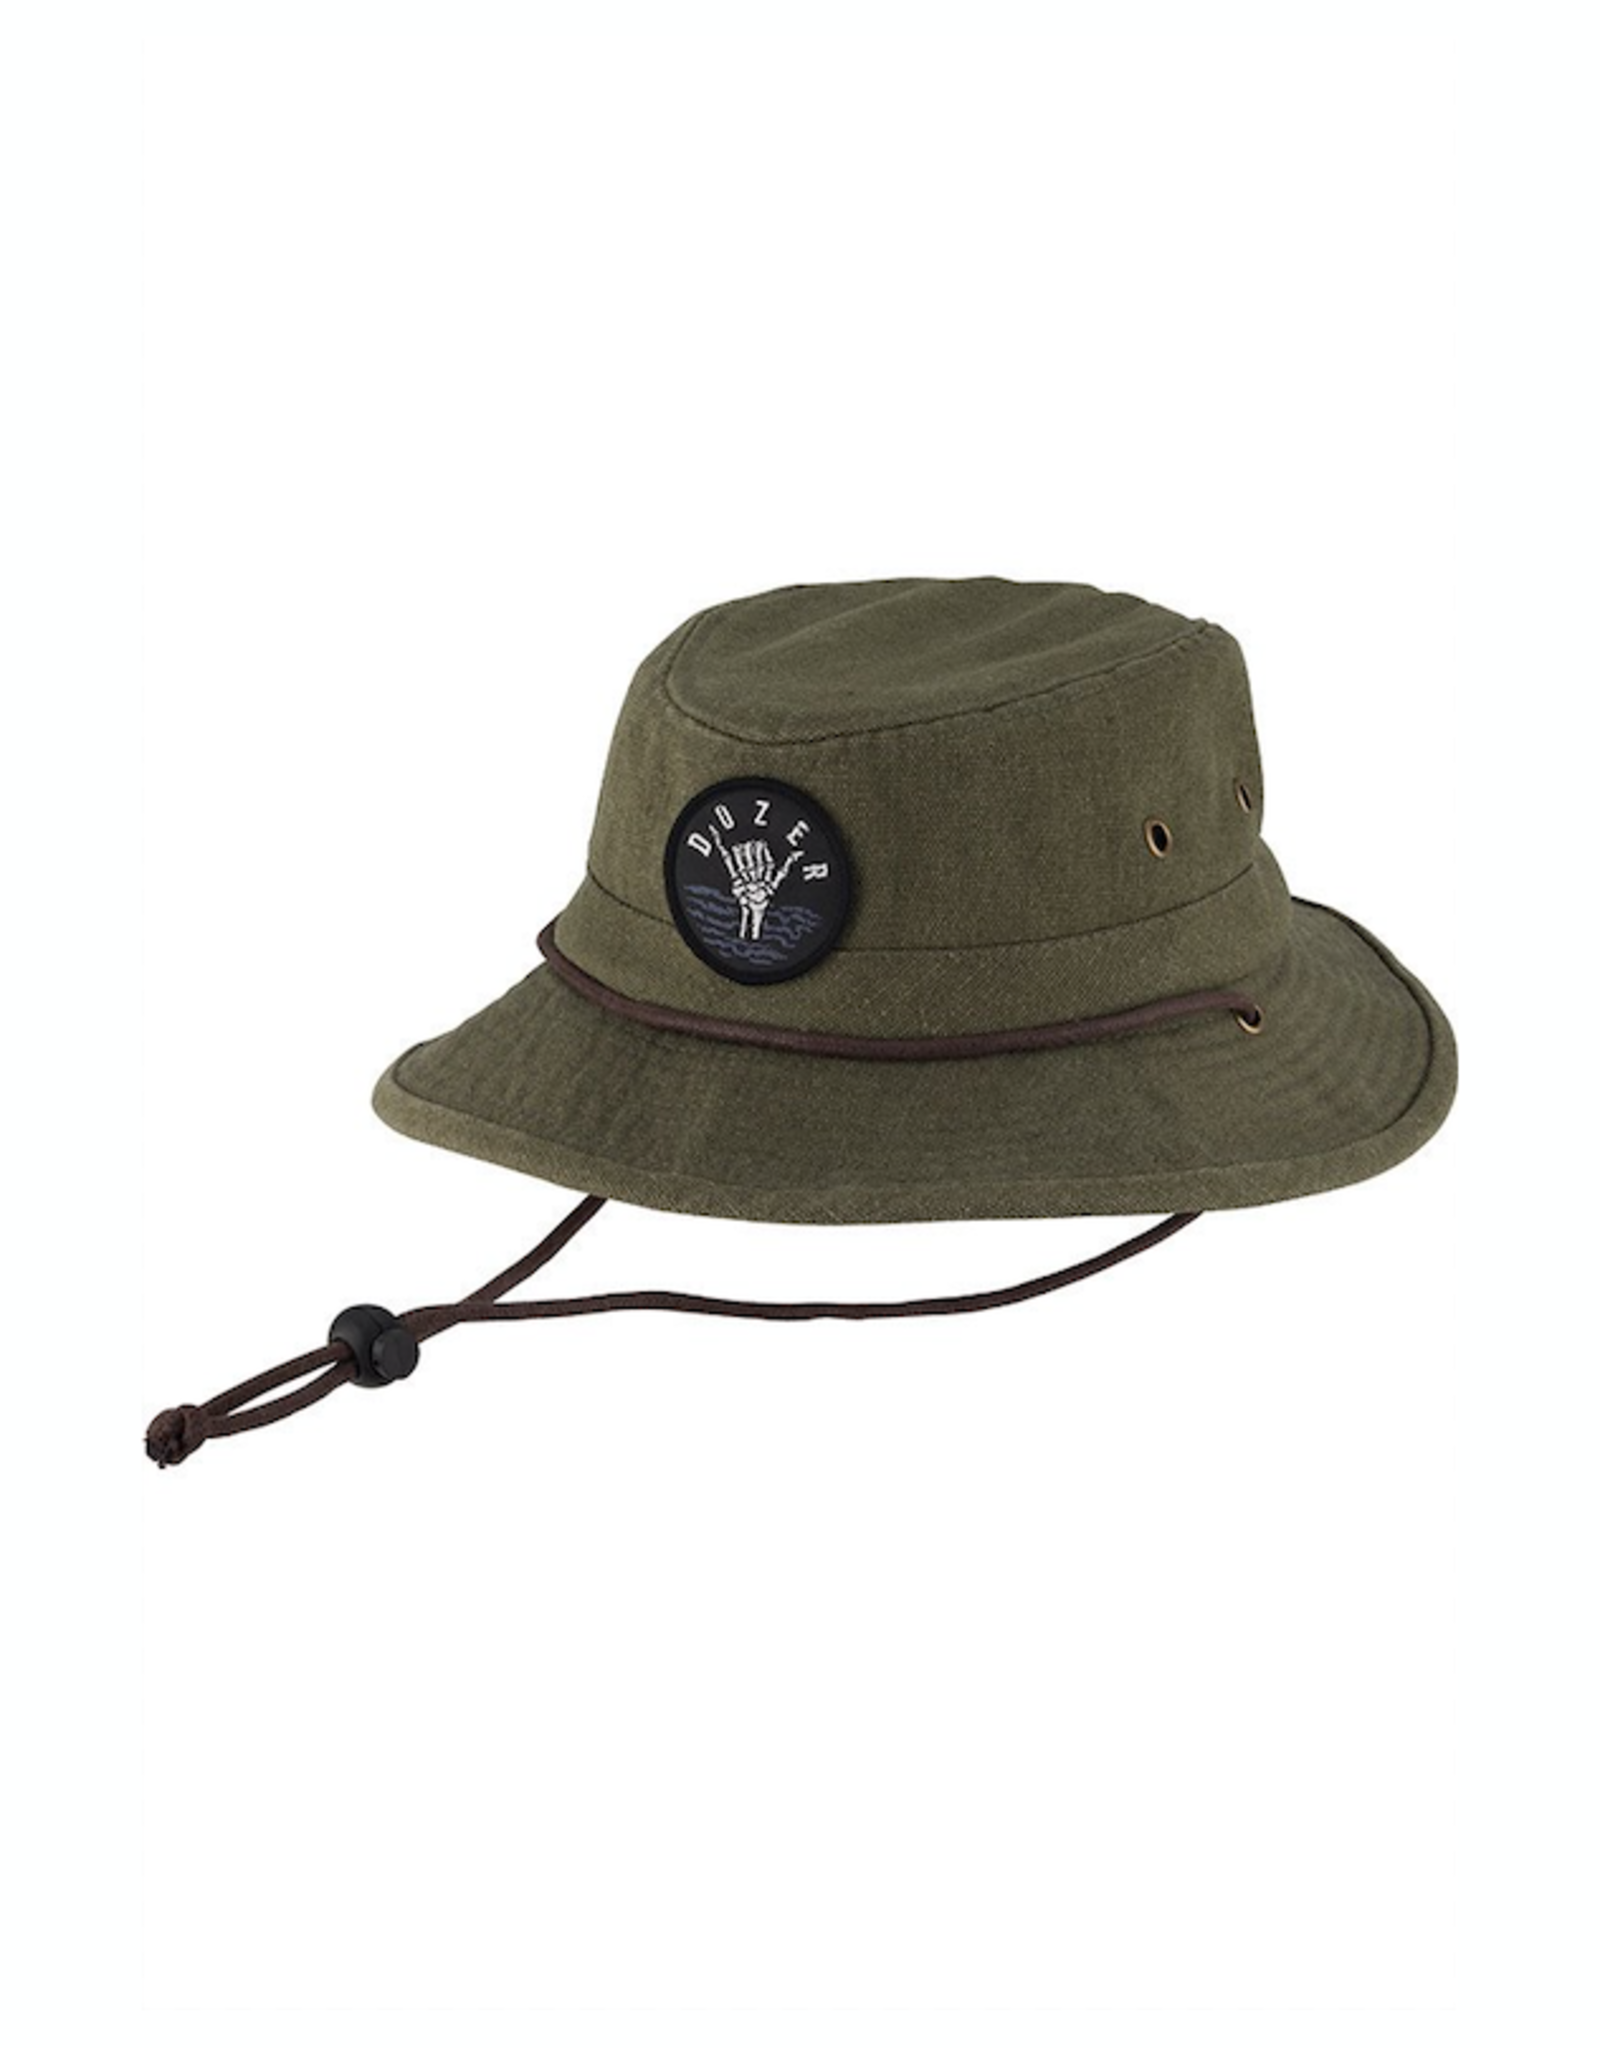 Dozer Zachary Boys Bucket Hat